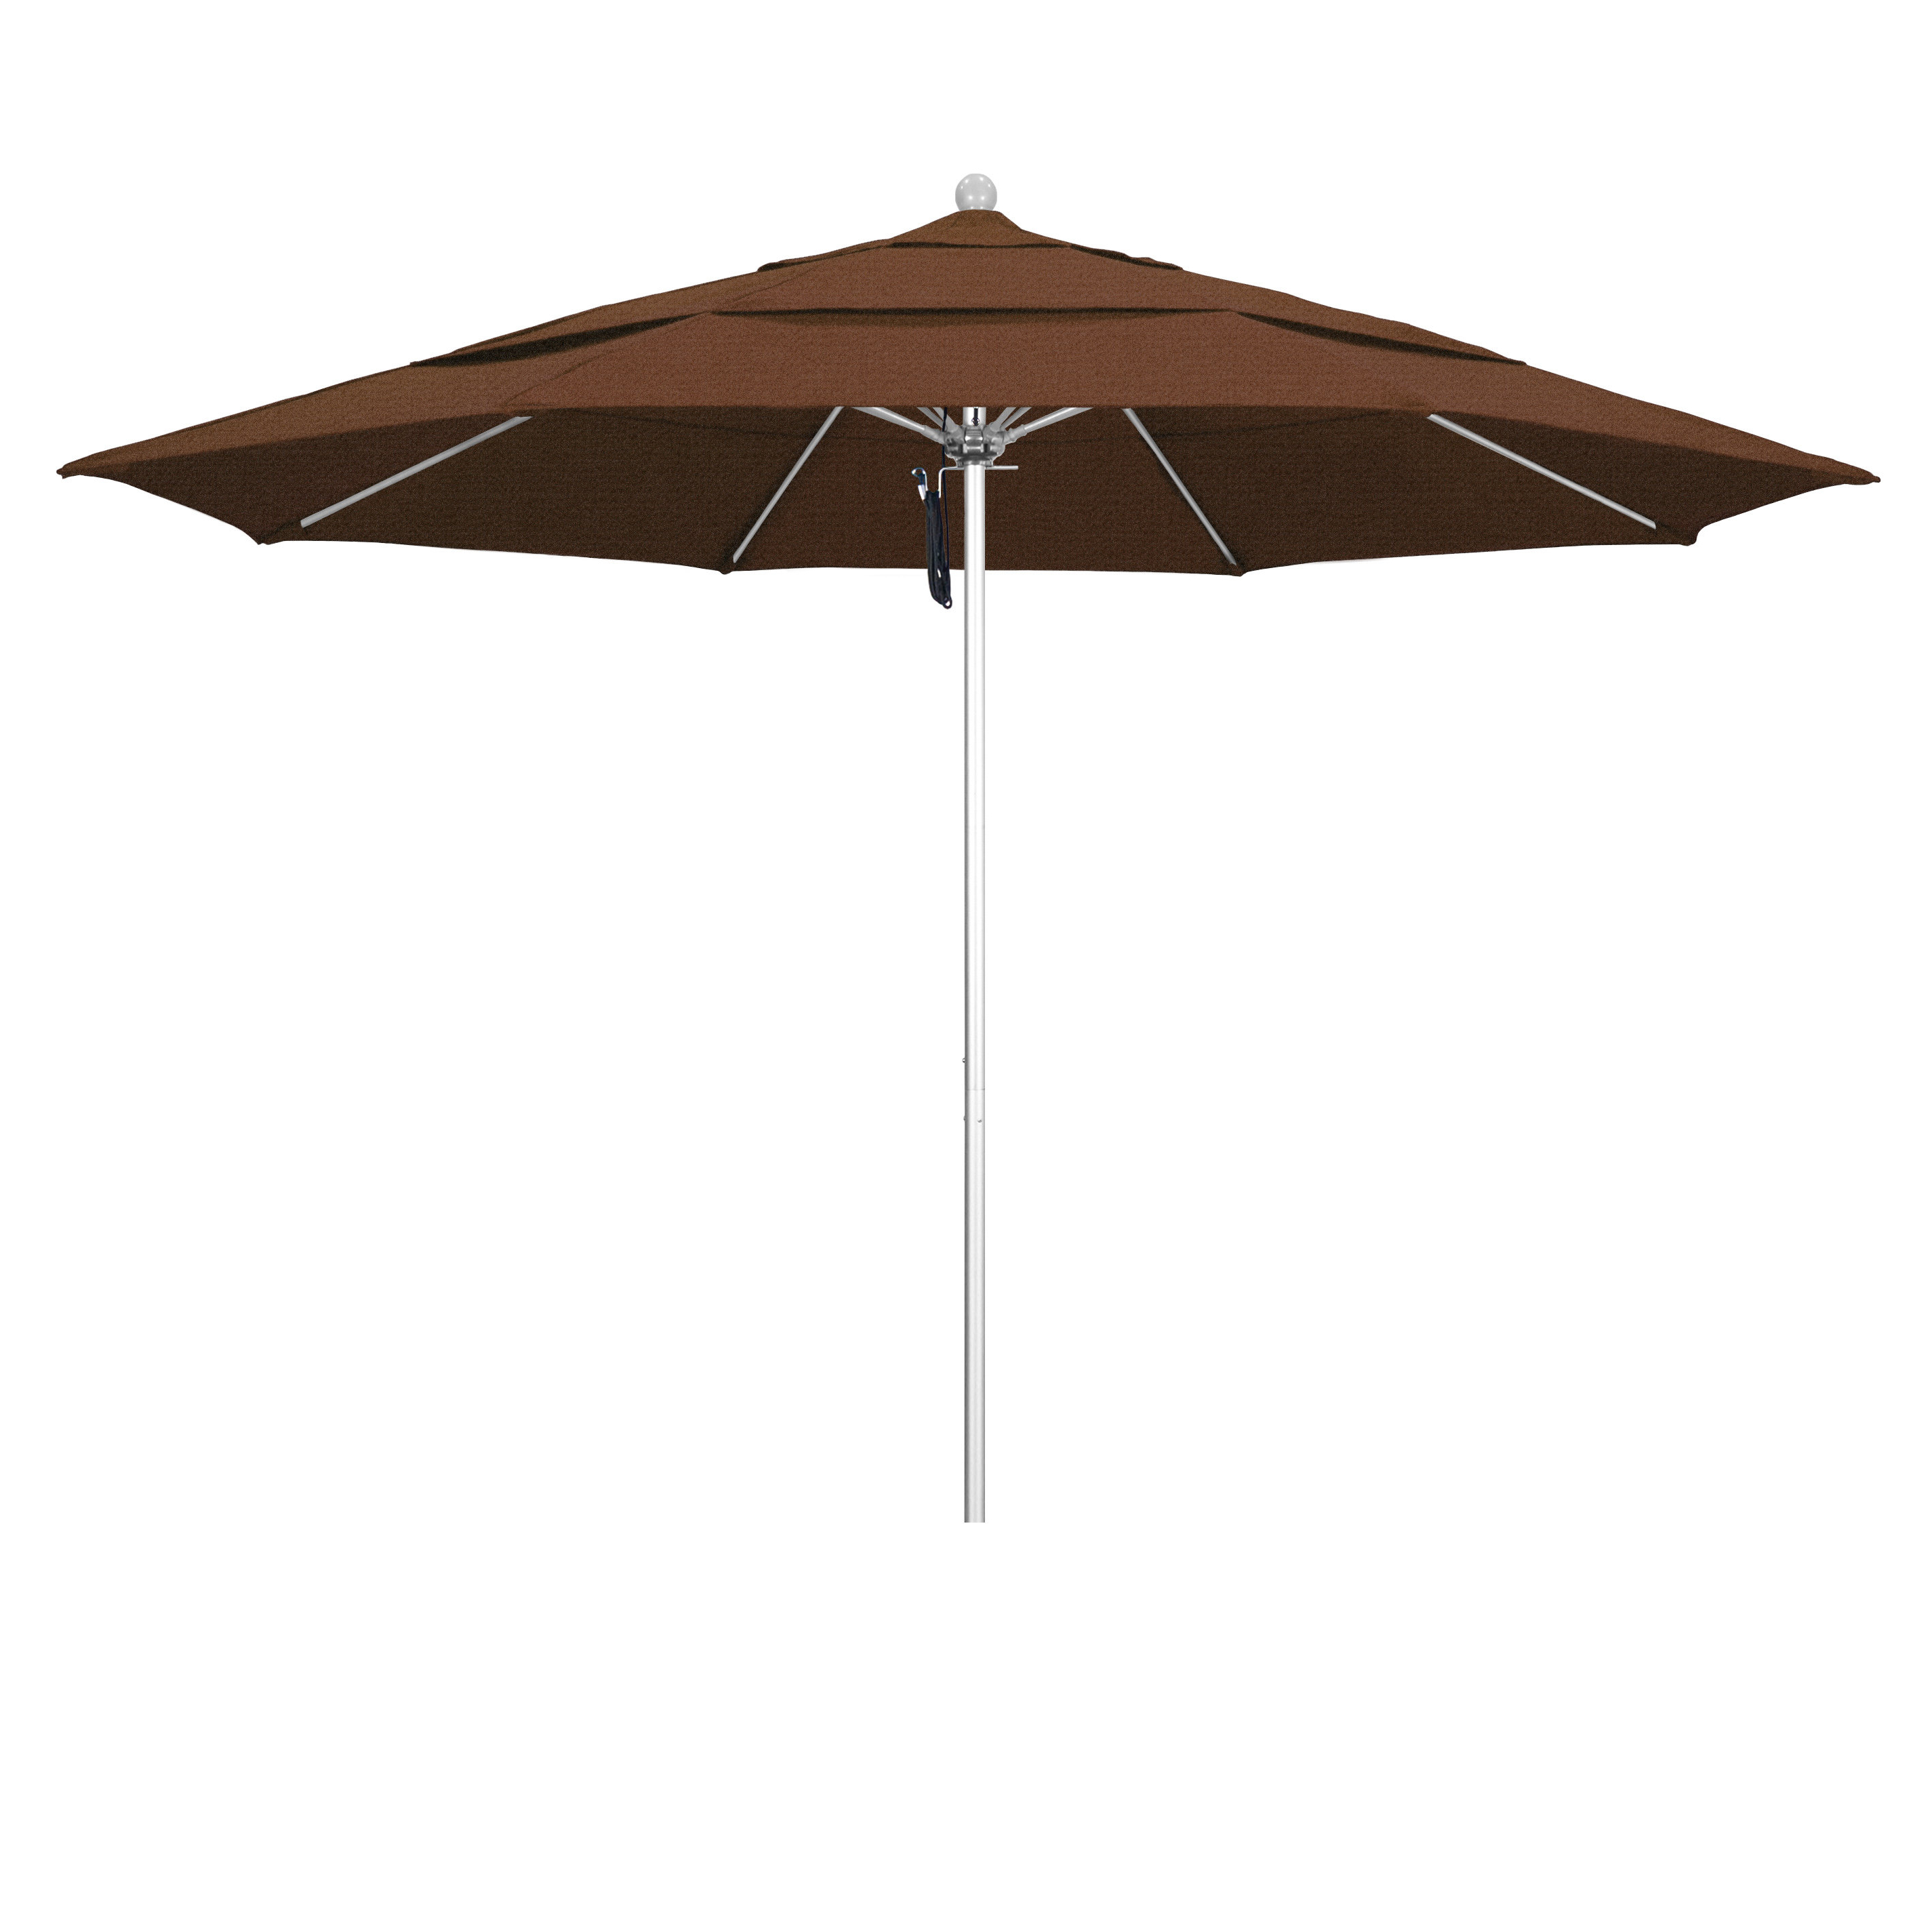 Best And Newest Caravelle Market Umbrellas Within Caravelle 11' Market Umbrella (View 5 of 20)